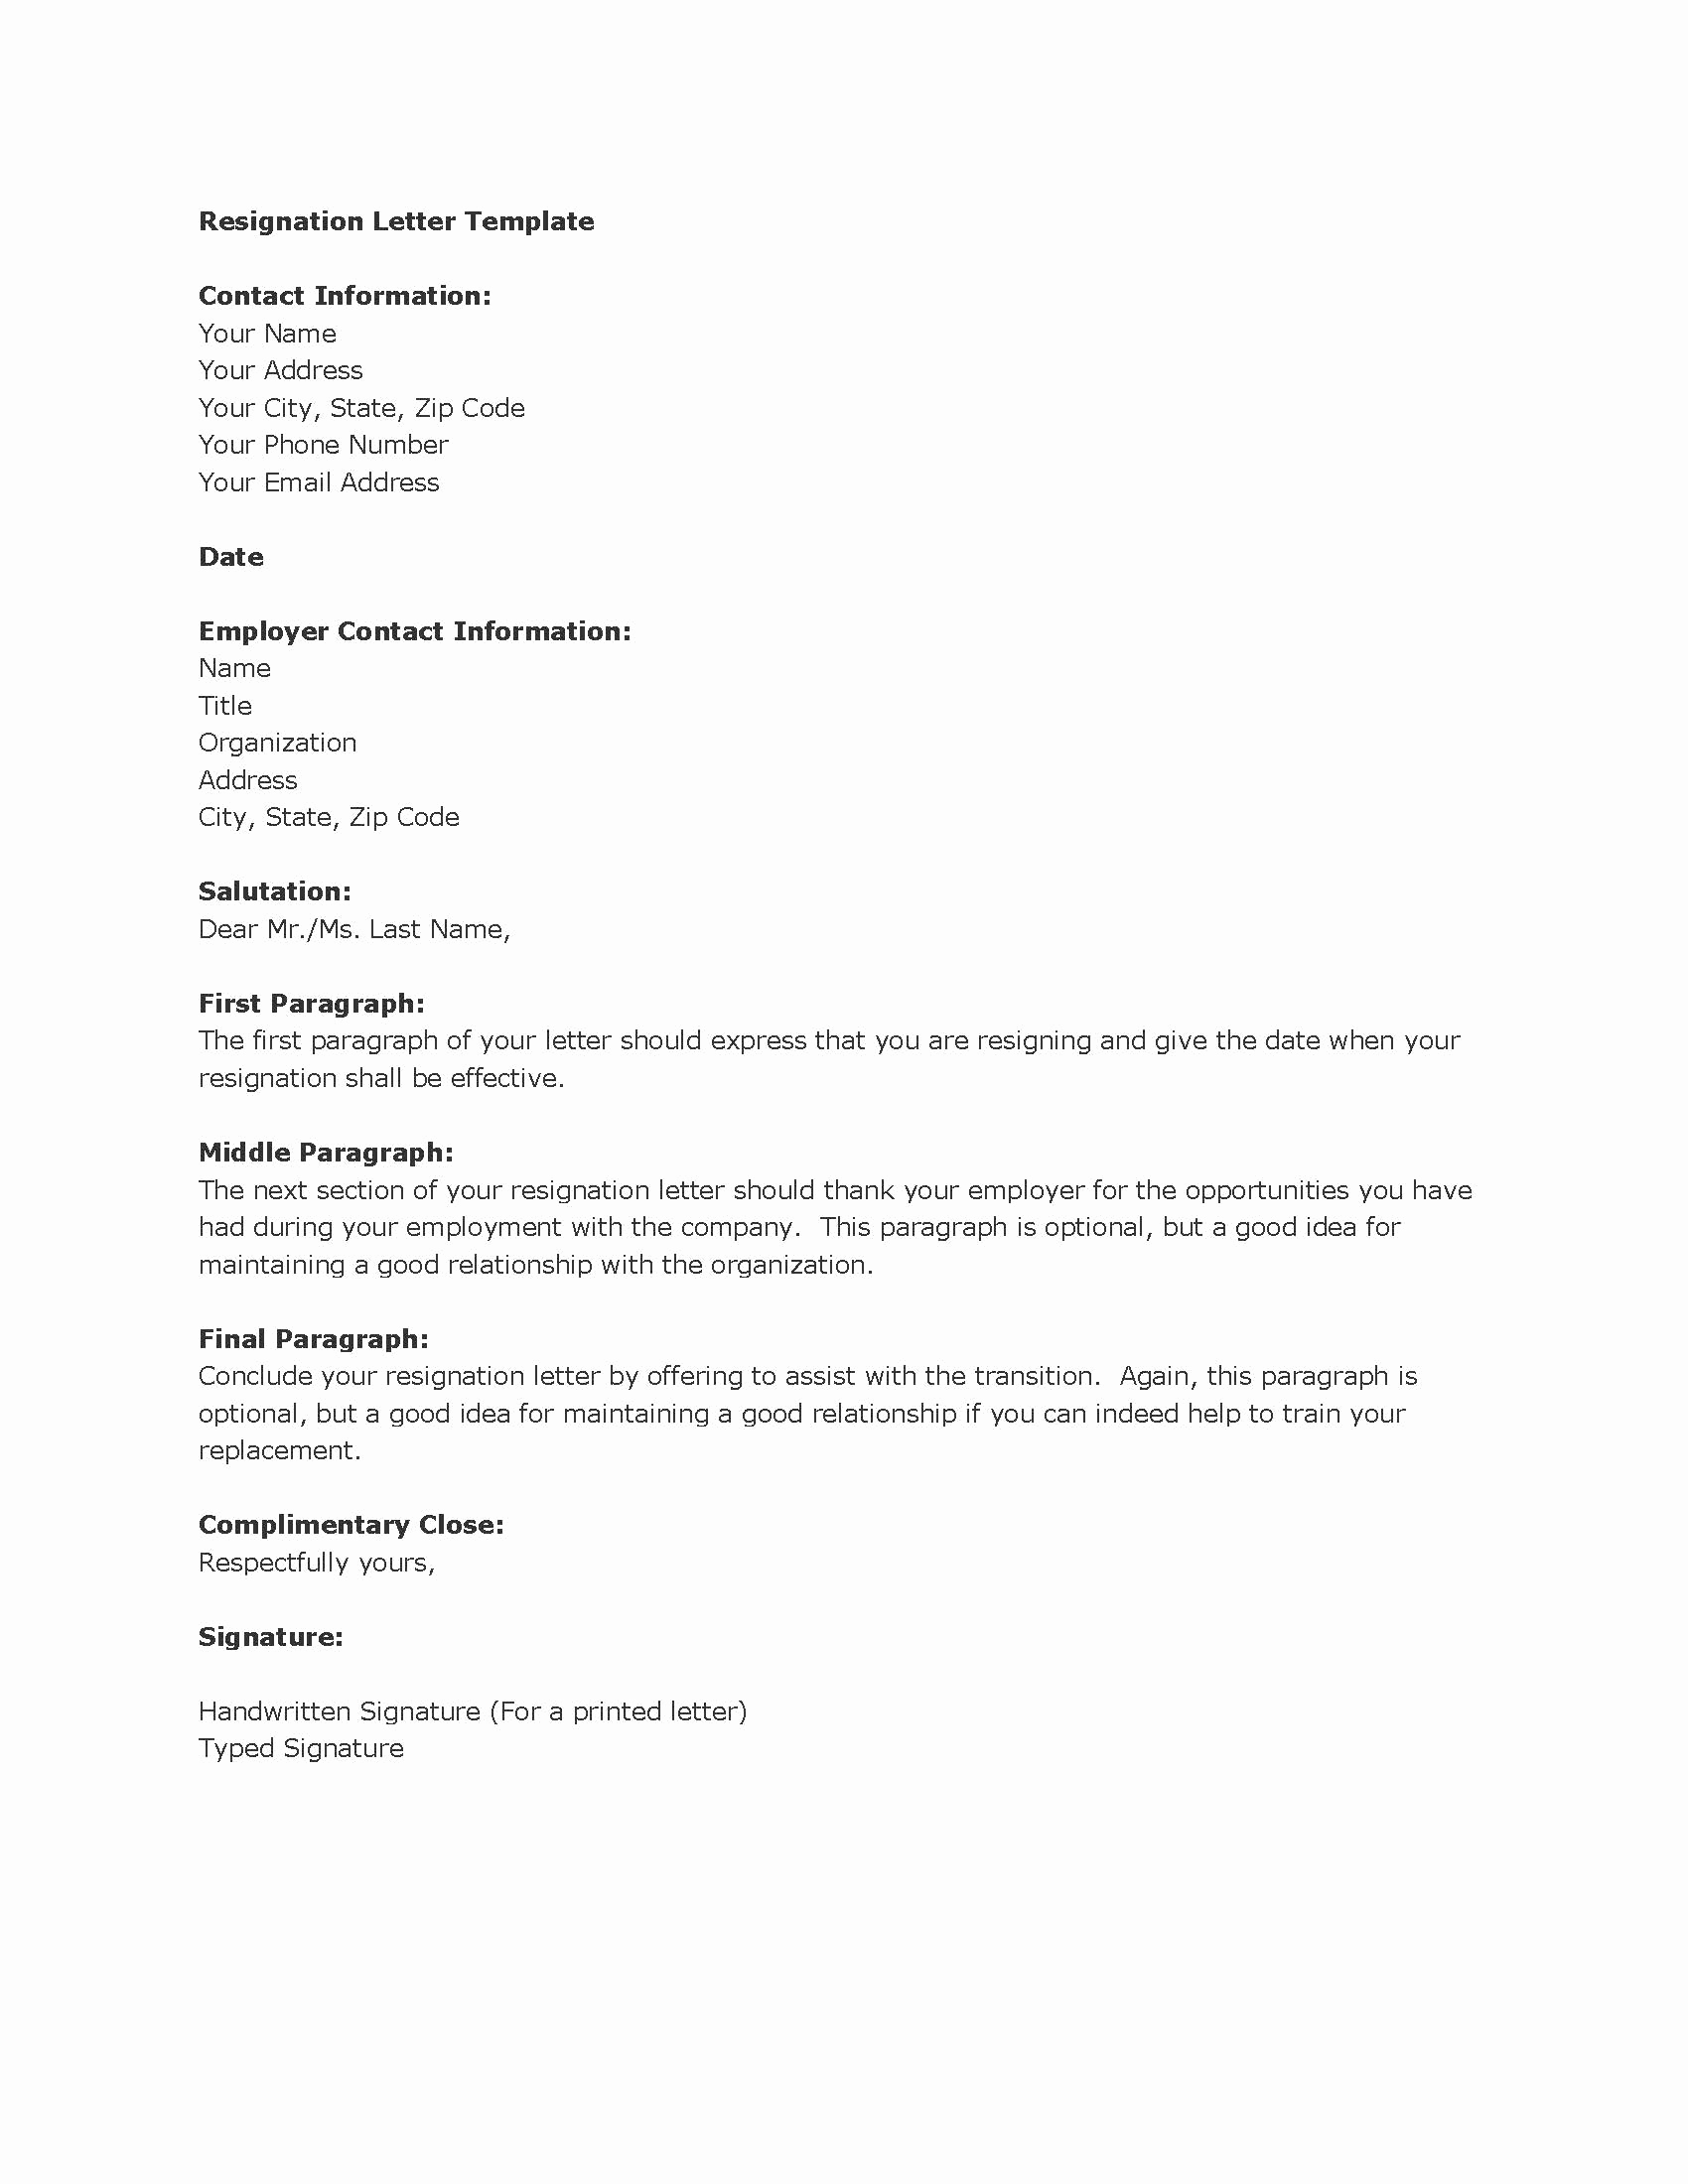 Letter Of Resignation Templates Best Of Best Letter Of Resignation Template